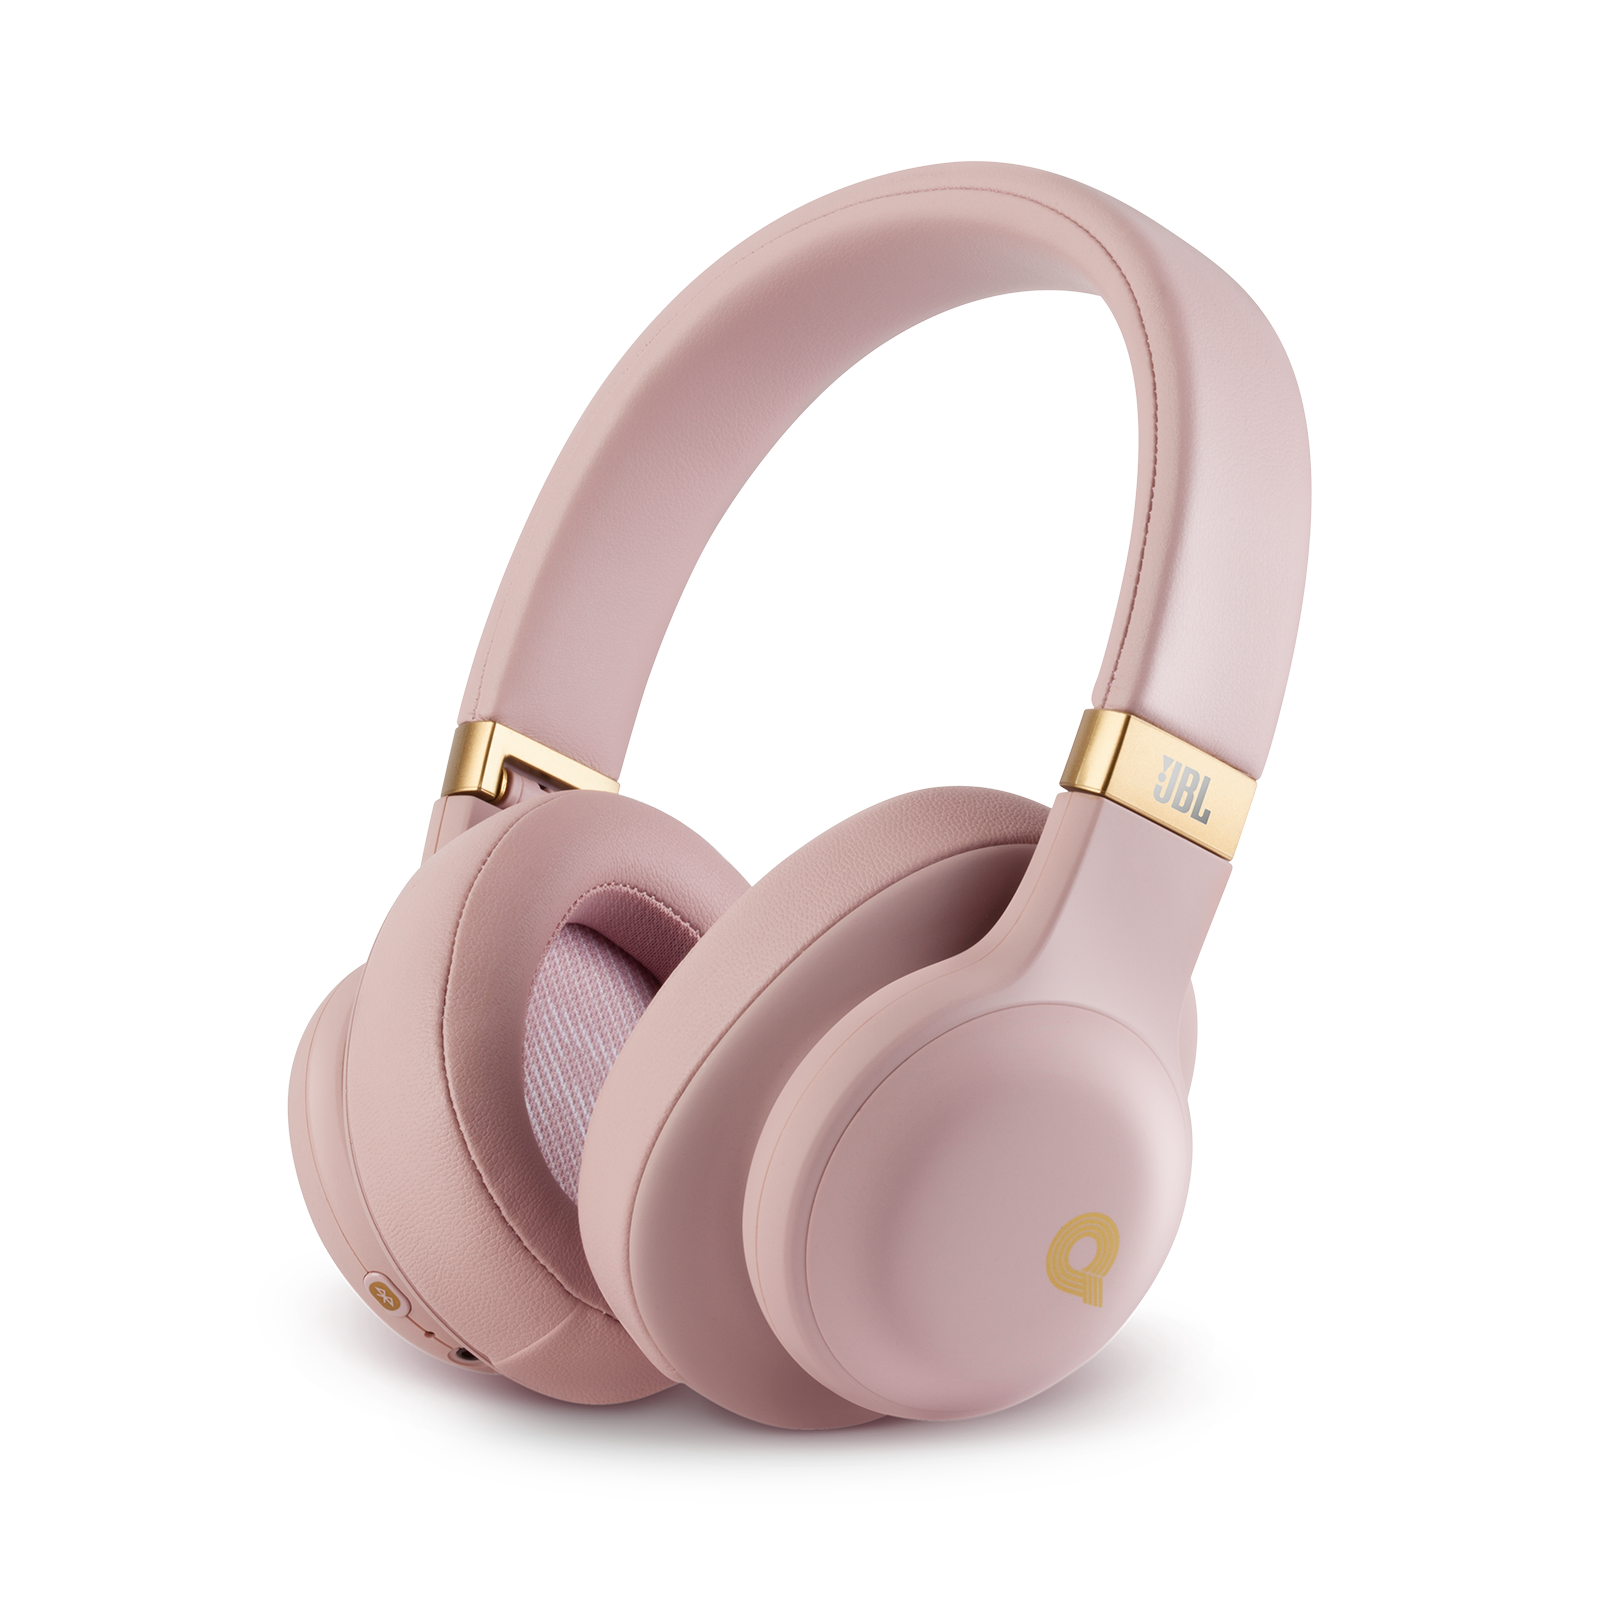 JBL E55BT Quincy Edition - Dusty Rose - Wireless over-ear headphones with Quincy's signature sound. - Hero